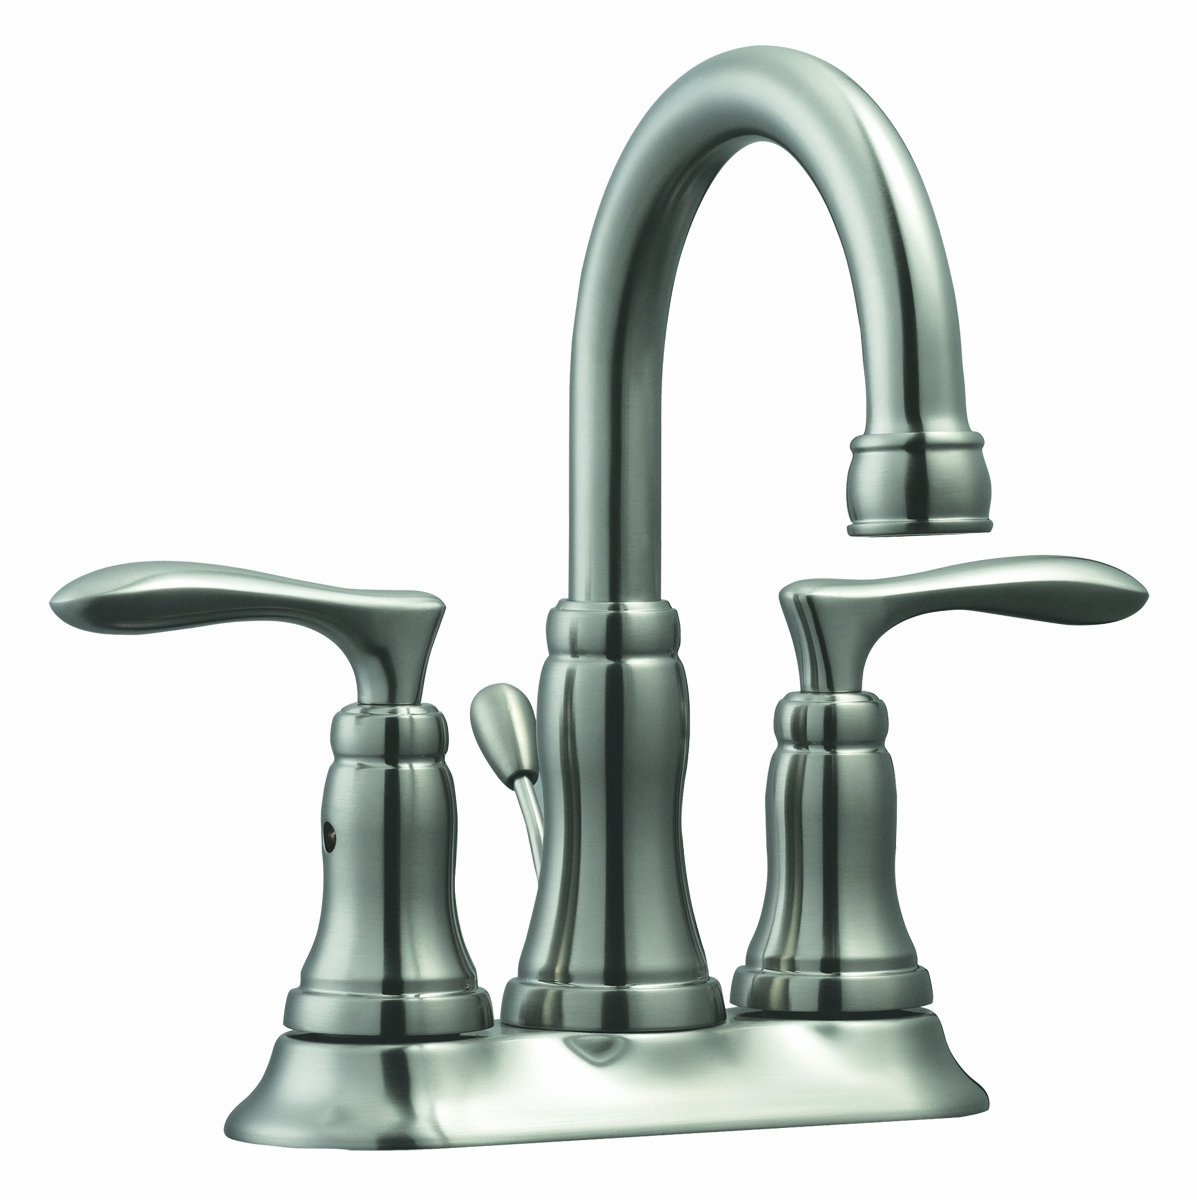 Design House 525840 Madison 4-Inch Lavatory Faucet, Satin Nickel well-wreapped